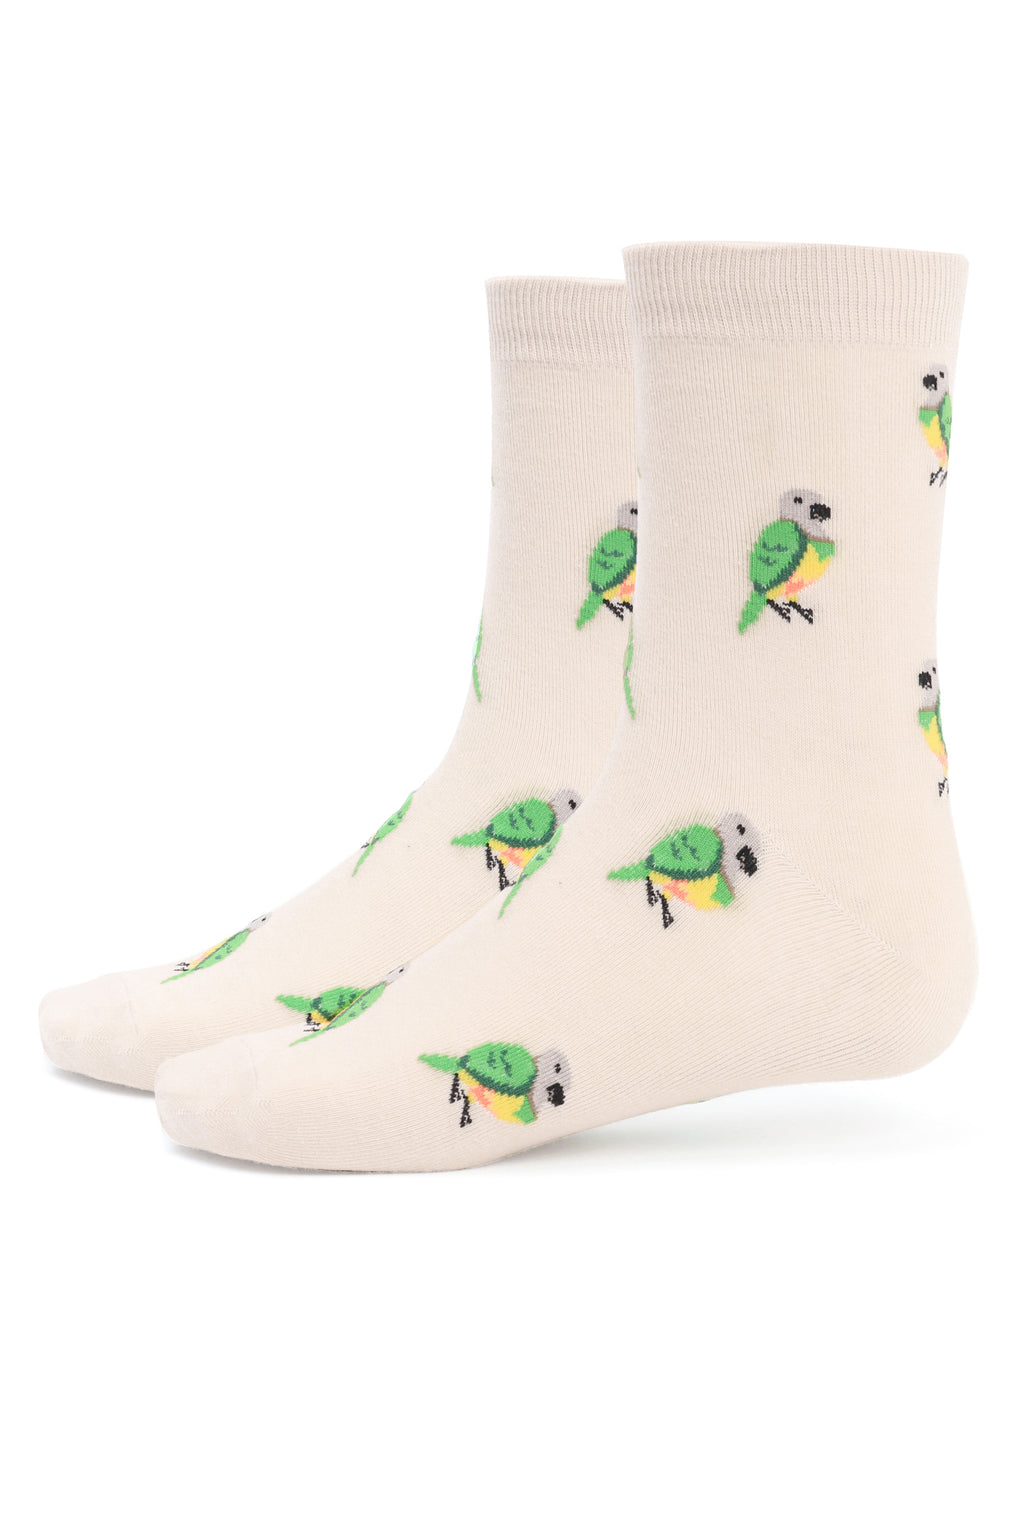 MACAW SOCKS-WHITE-GREEN